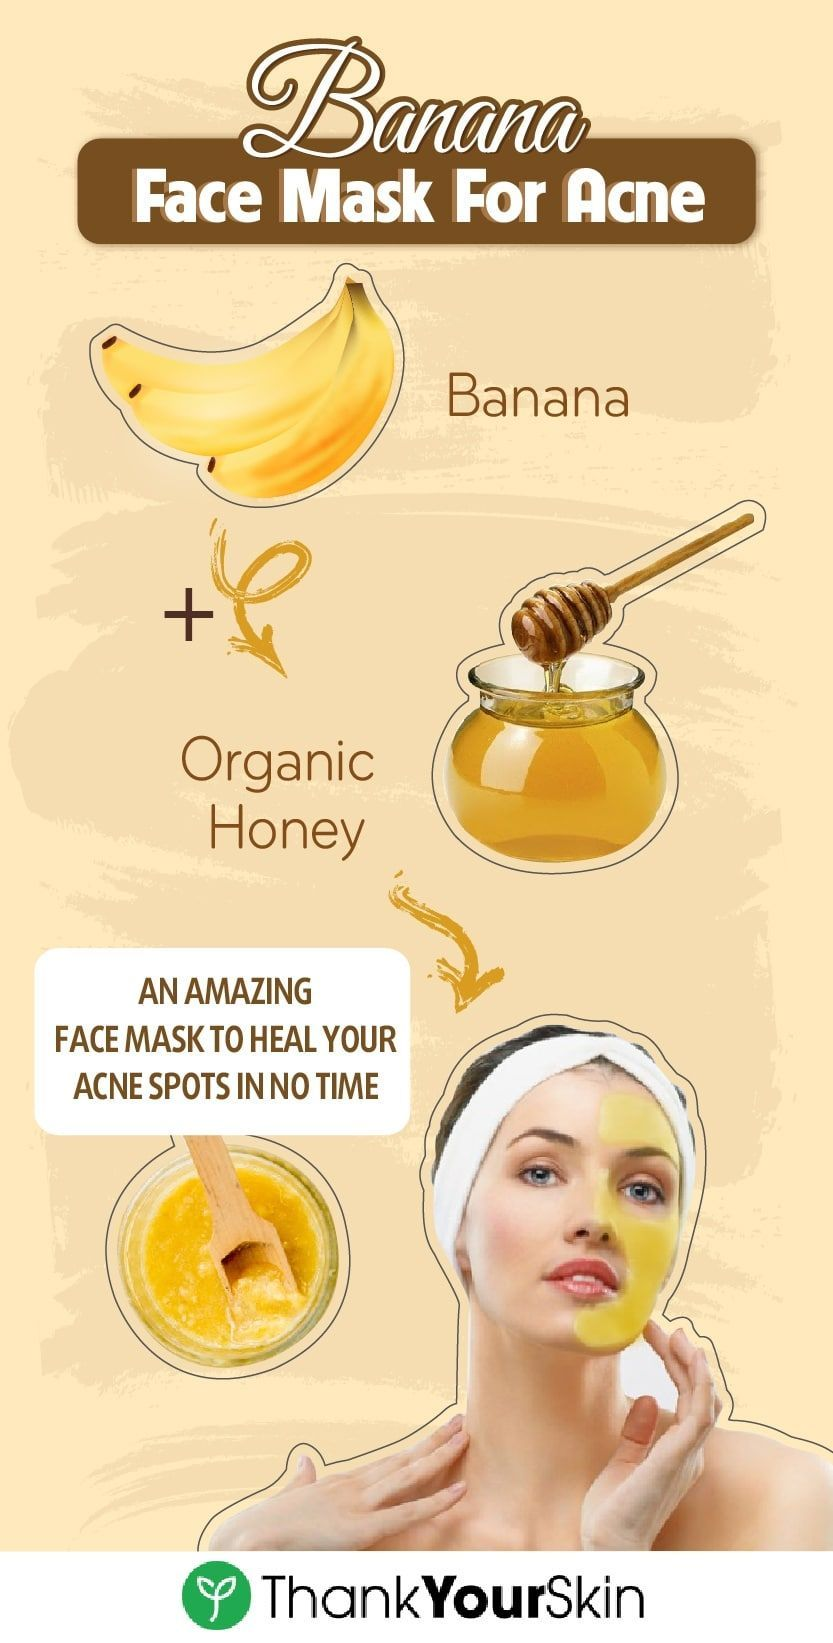 23 homemade face masks for acne that actually work homemade face this homemade face mask made from honey and banana is full of vitamins and acne fighting properties that can soothe irritated skin in no time solutioingenieria Choice Image